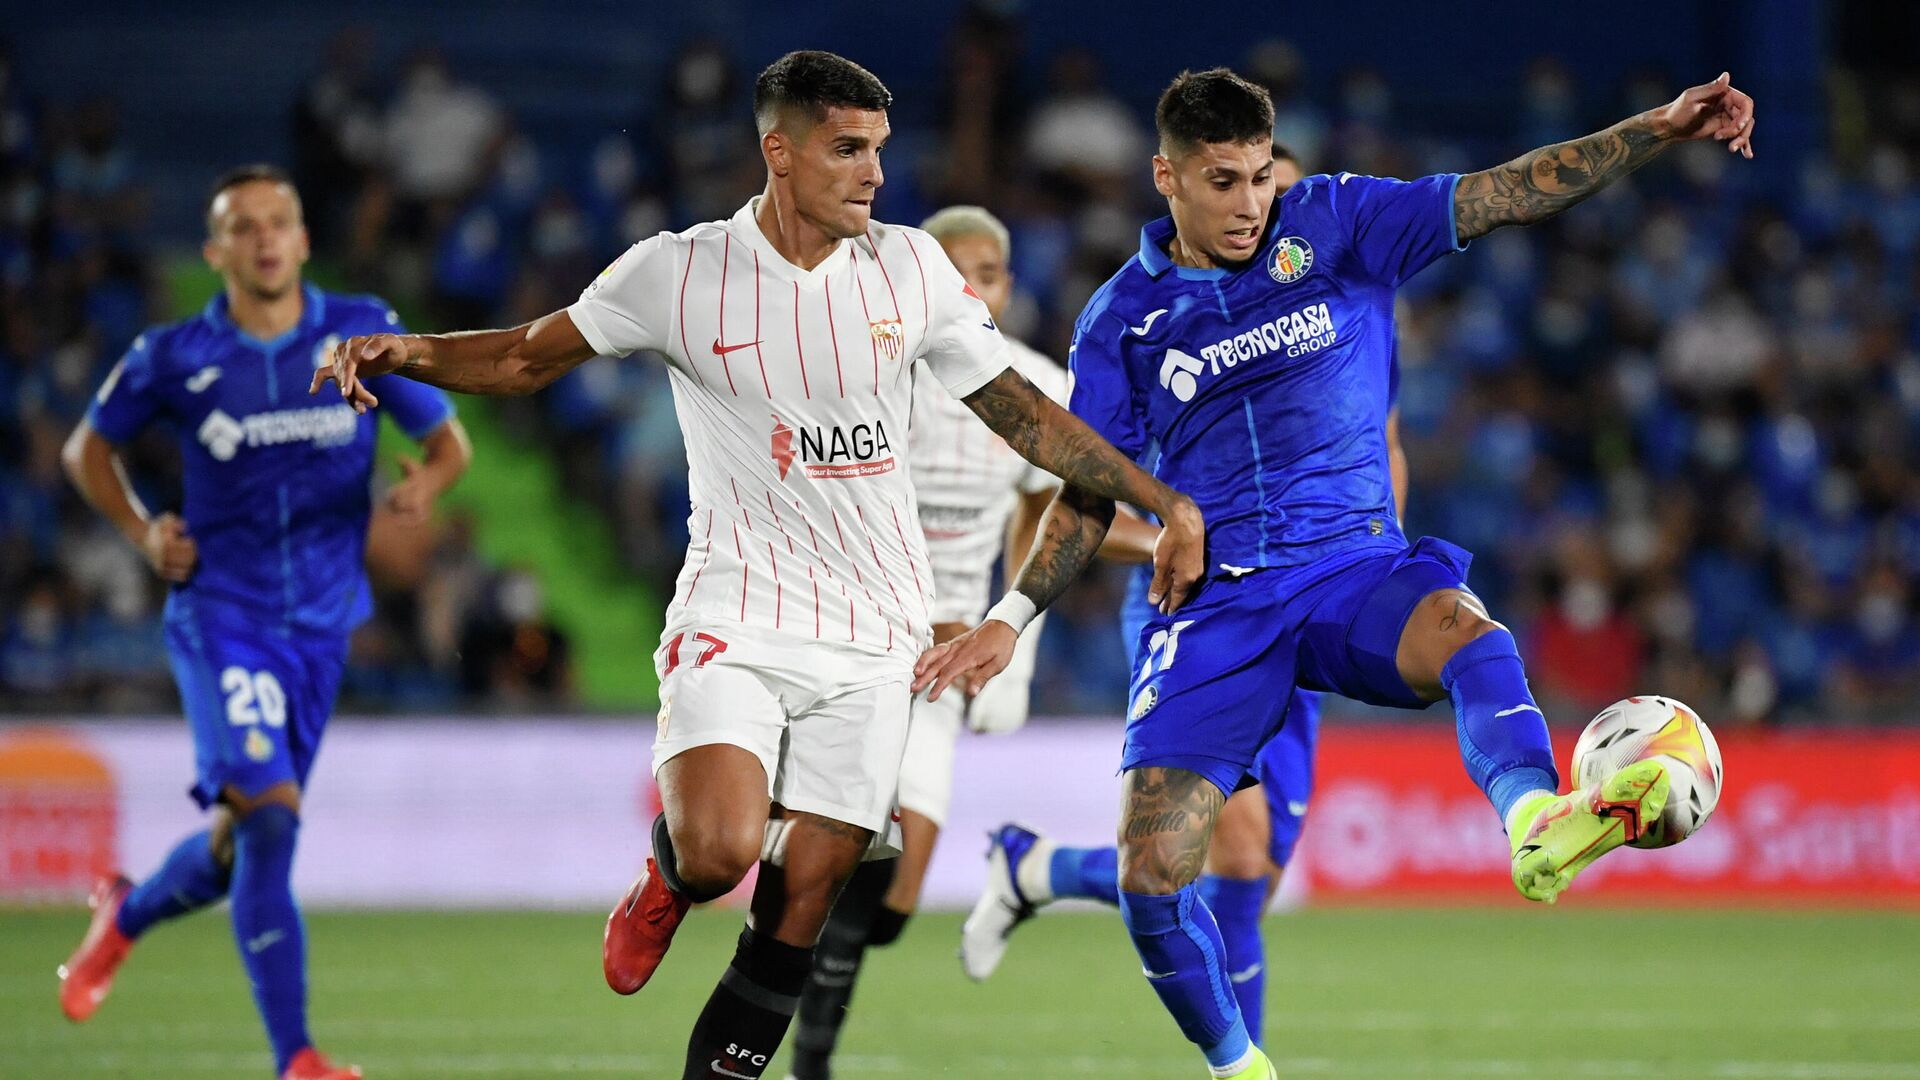 Getafe's Uruguayan defender Mathias Olivera (R) vies with Sevilla's Argentinian forward Erik Lamela during the Spanish League football match between Getafe CF and Sevilla FC at the Col. Alfonso Perez stadium in Getafe on August 22, 2021. (Photo by PIERRE-PHILIPPE MARCOU / AFP) - РИА Новости, 1920, 23.08.2021